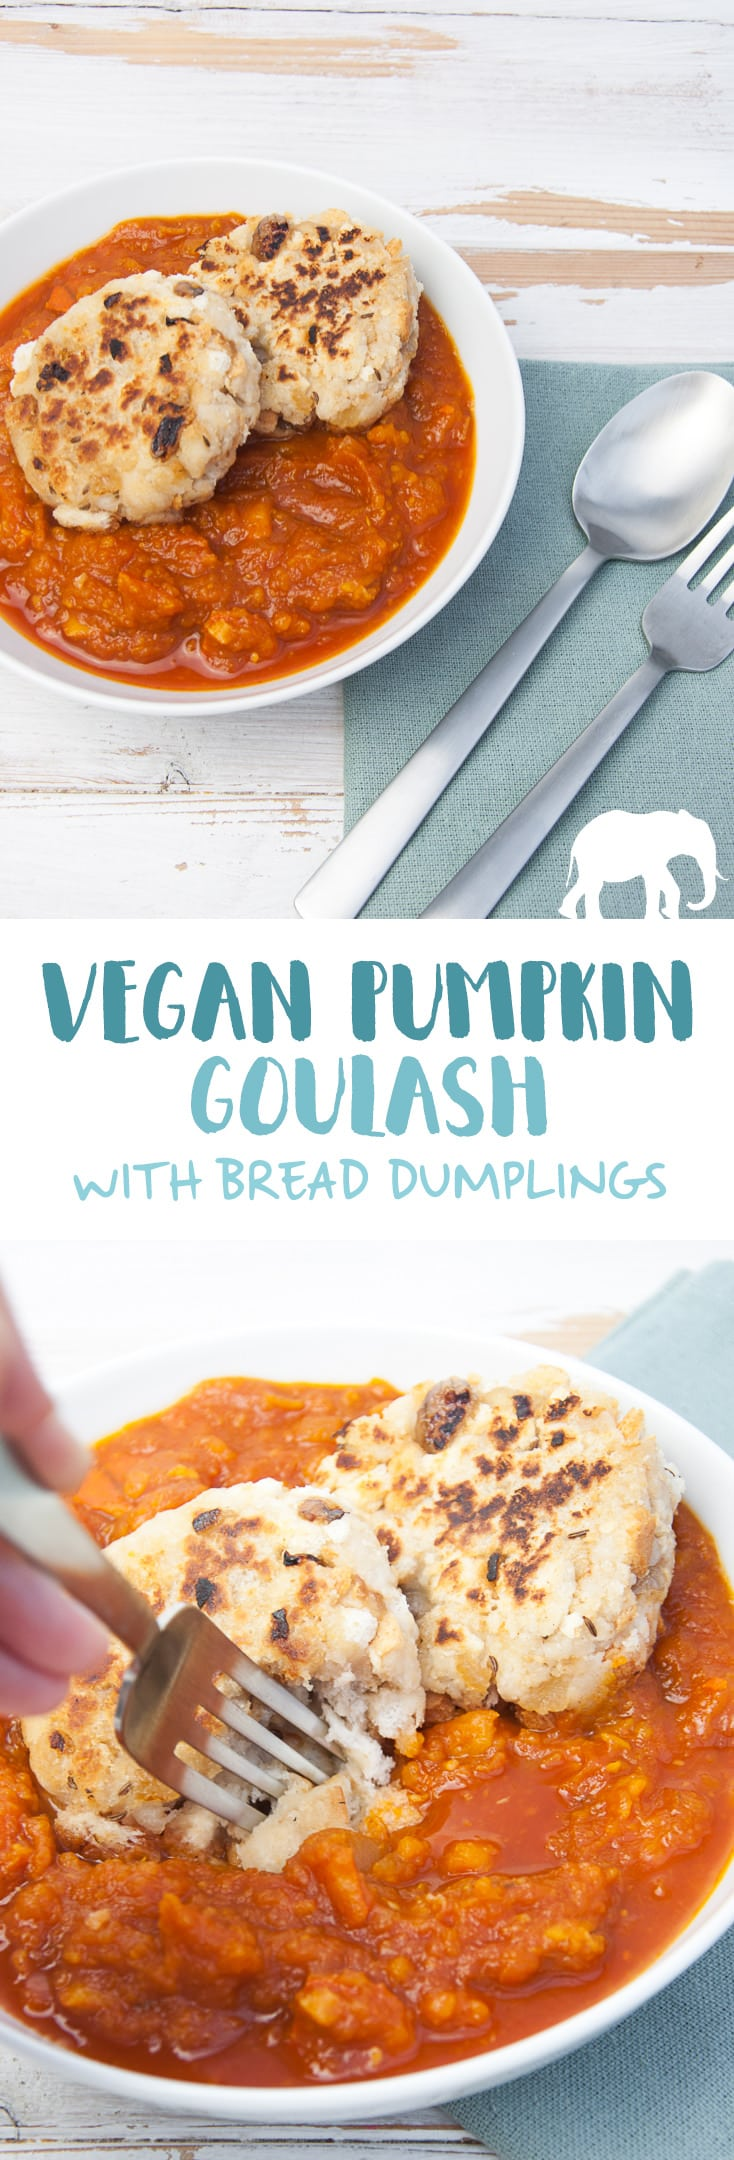 Vegan Pumpkin Goulash with Bread Dumplings | ElephantasticVegan.com #vegan #goulash #pumpkin #fall